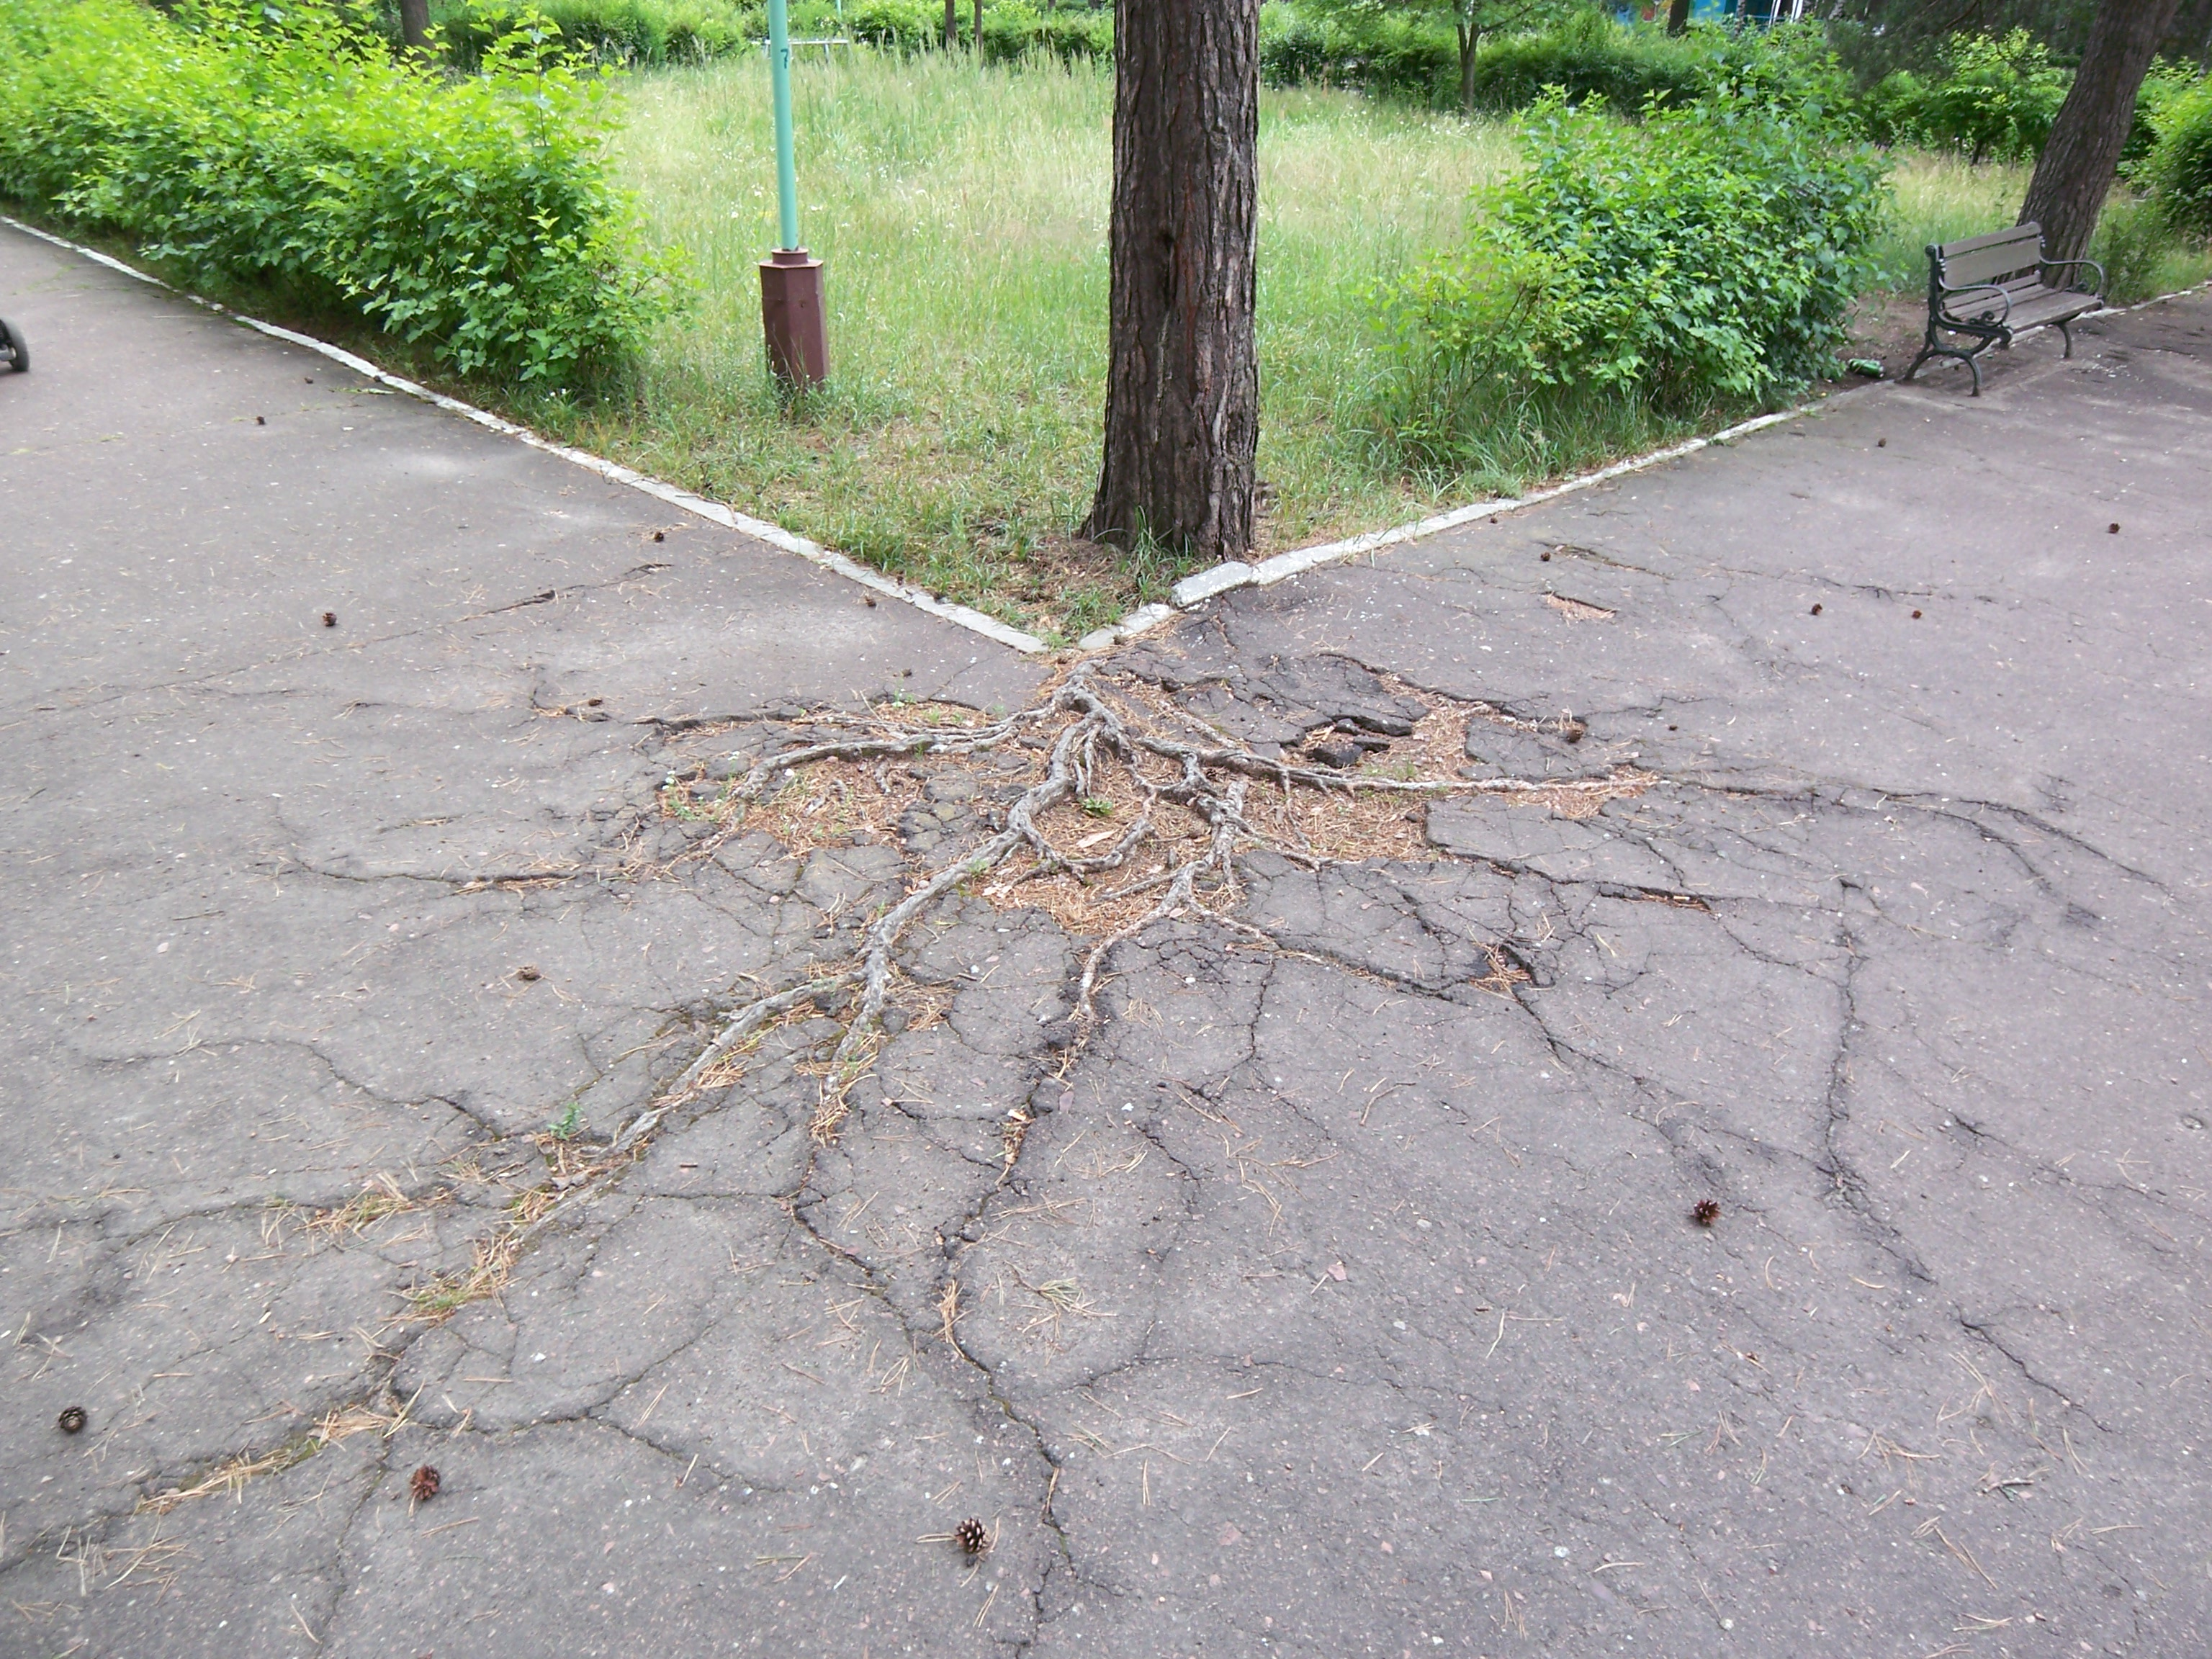 The roots of the tree are breaking up the asphalt.